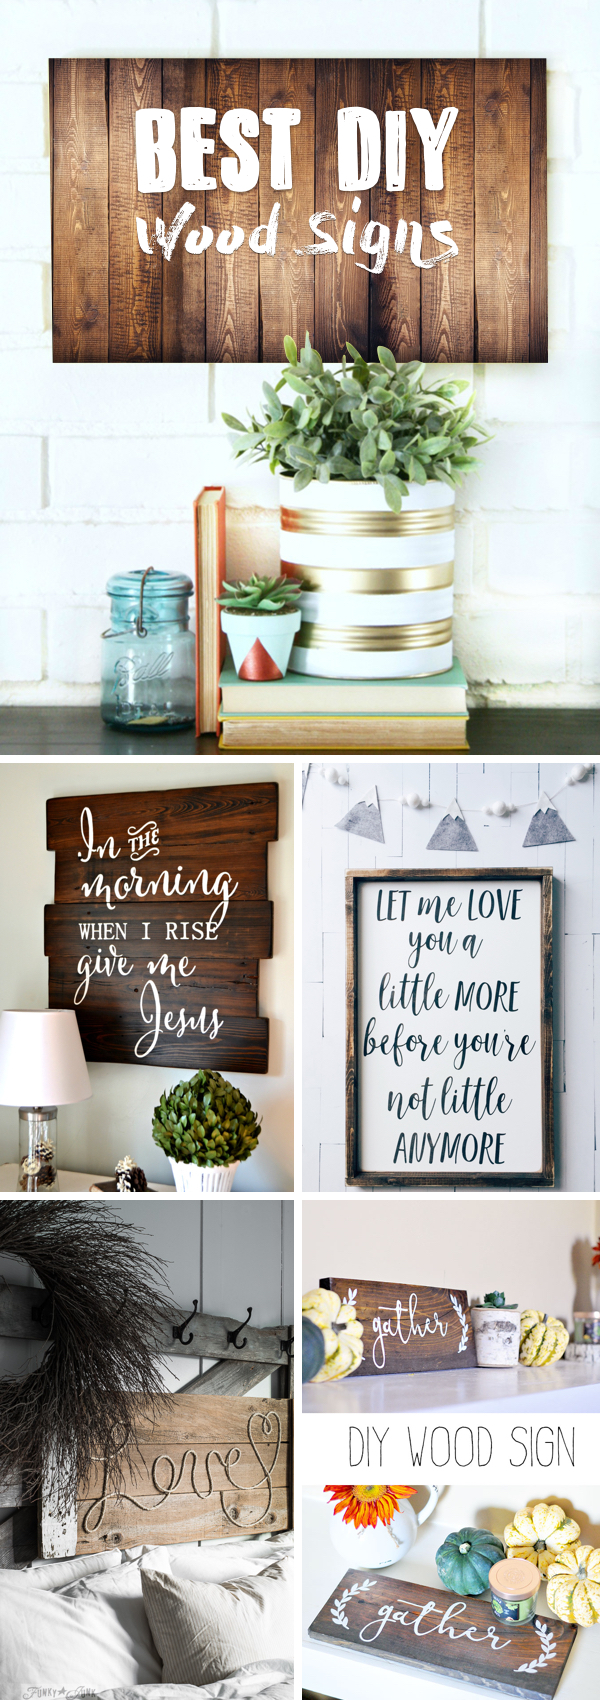 DIY Wood Signs Showcasing Your Designs with Rusticness at its Best